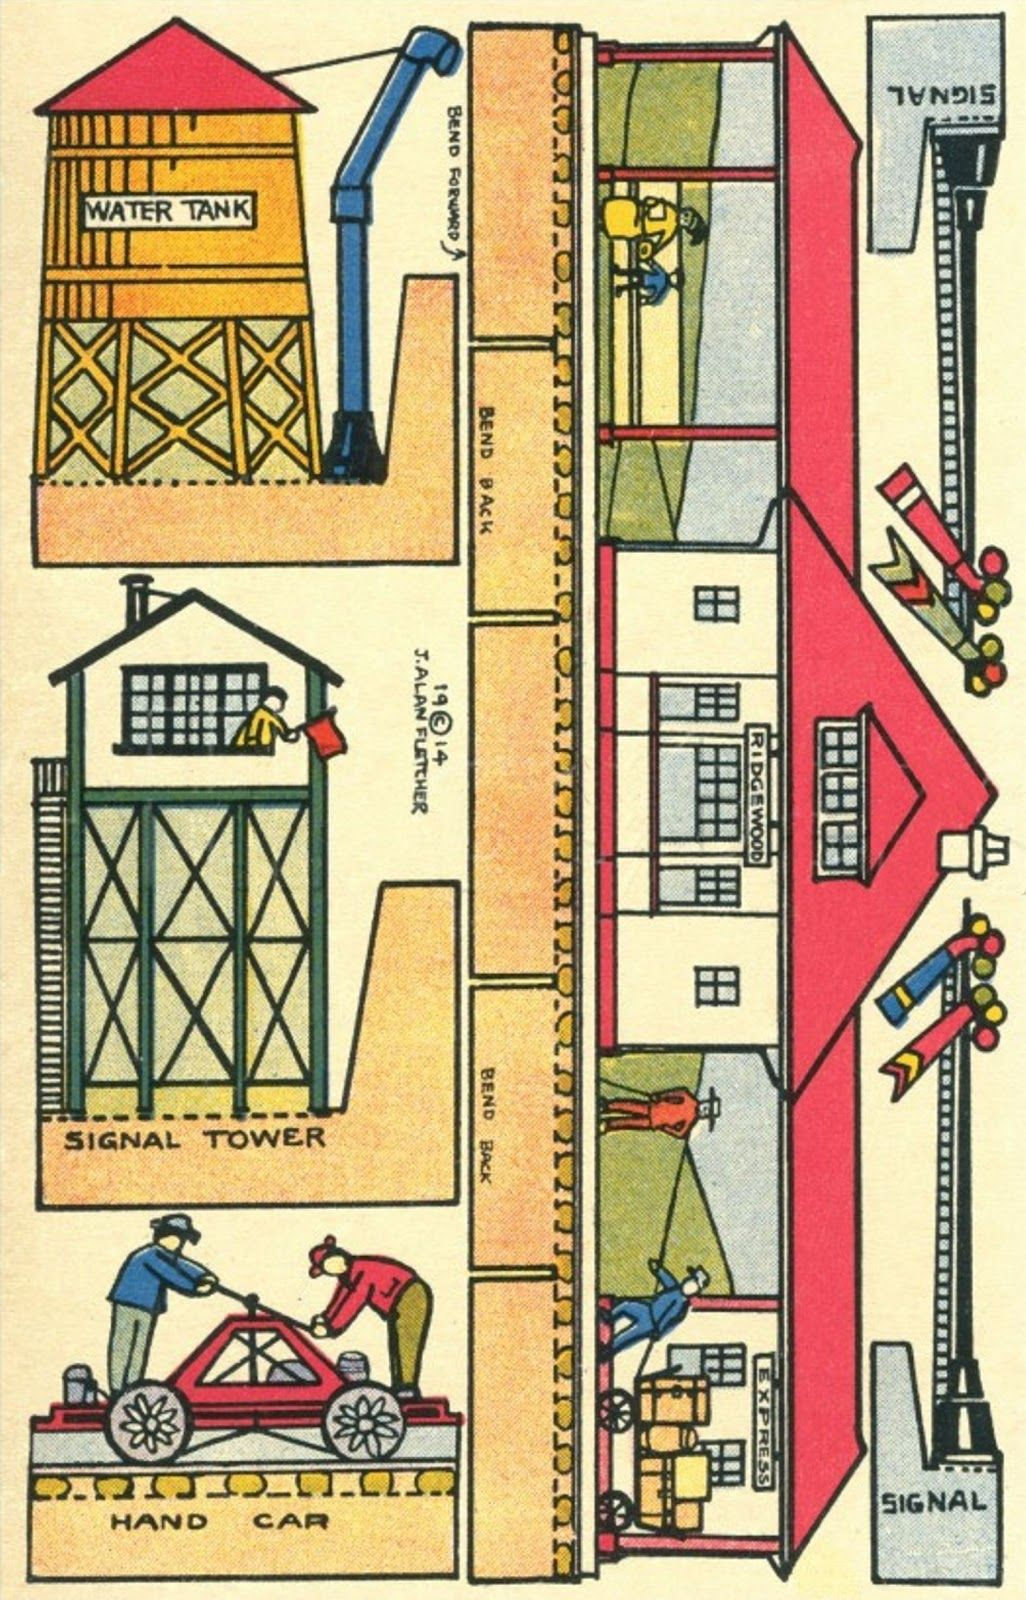 Pin by Cindy Wagner on Paper Dolls & Paper Toys | Paper